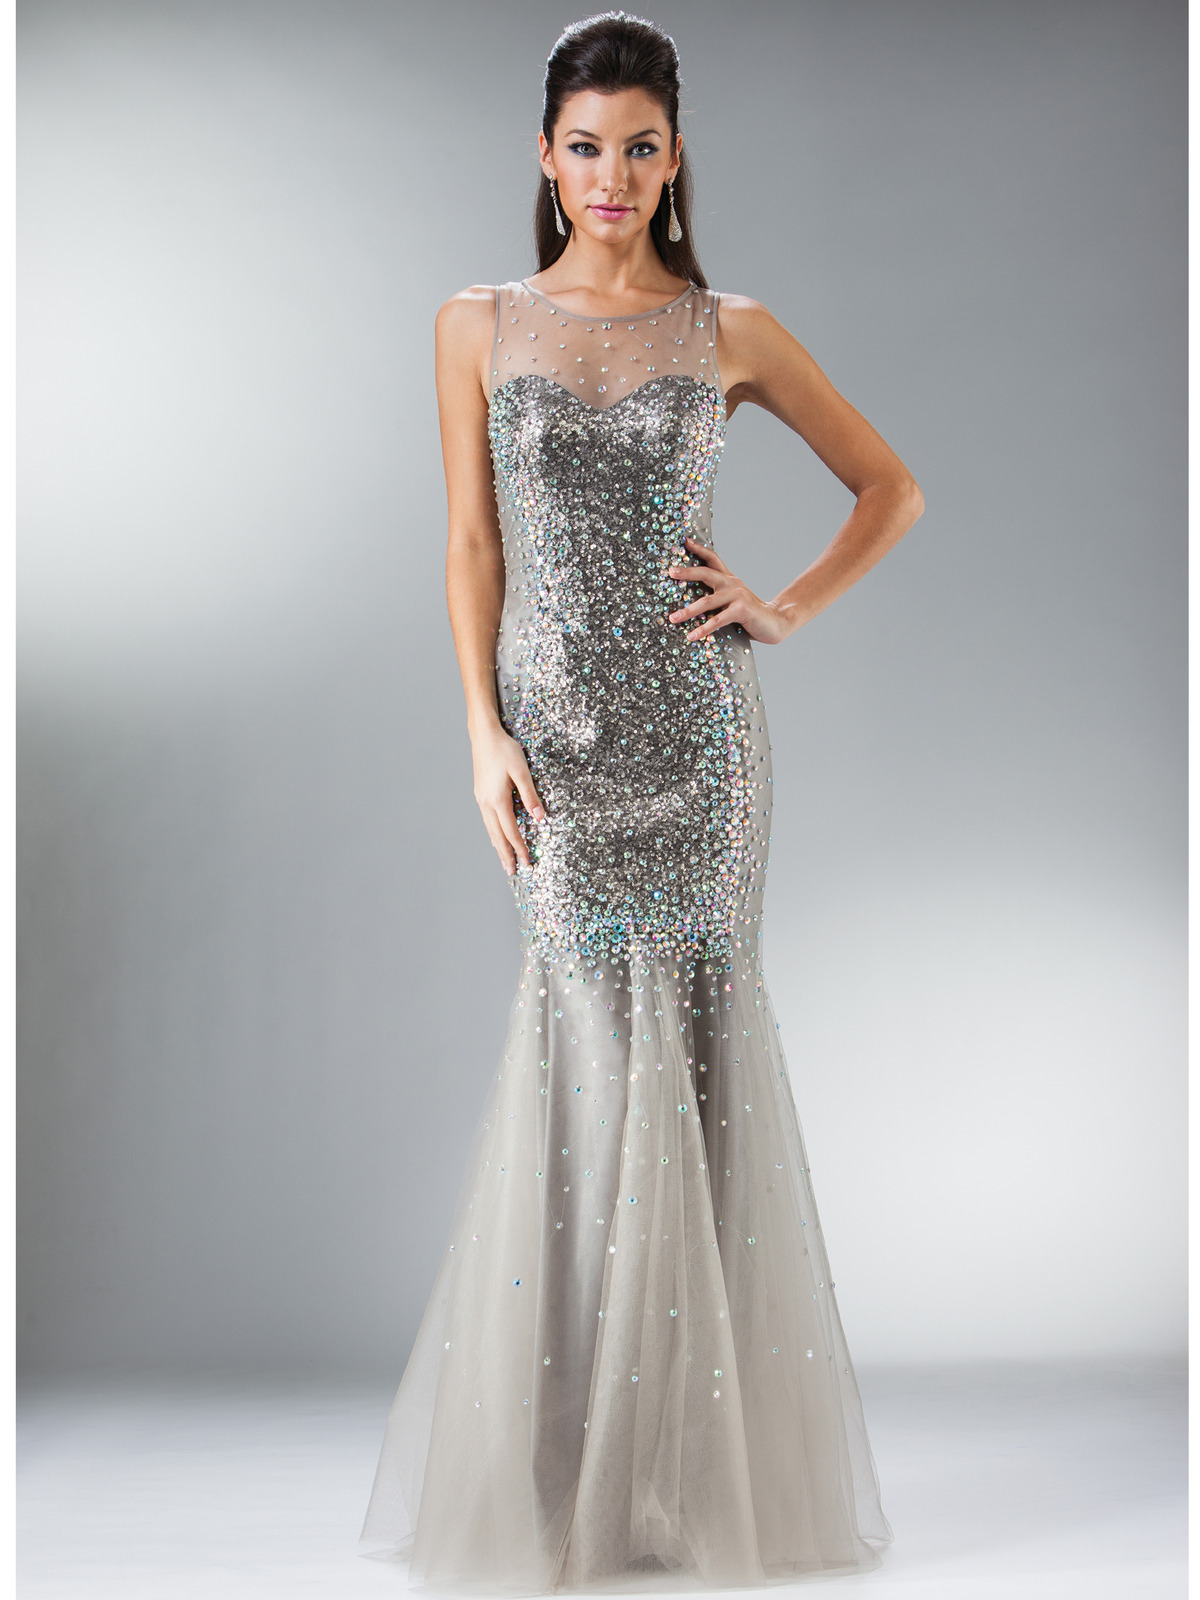 Silver Sweetheart Illusion Neckline Mermaid Evening Gown | Sung ...